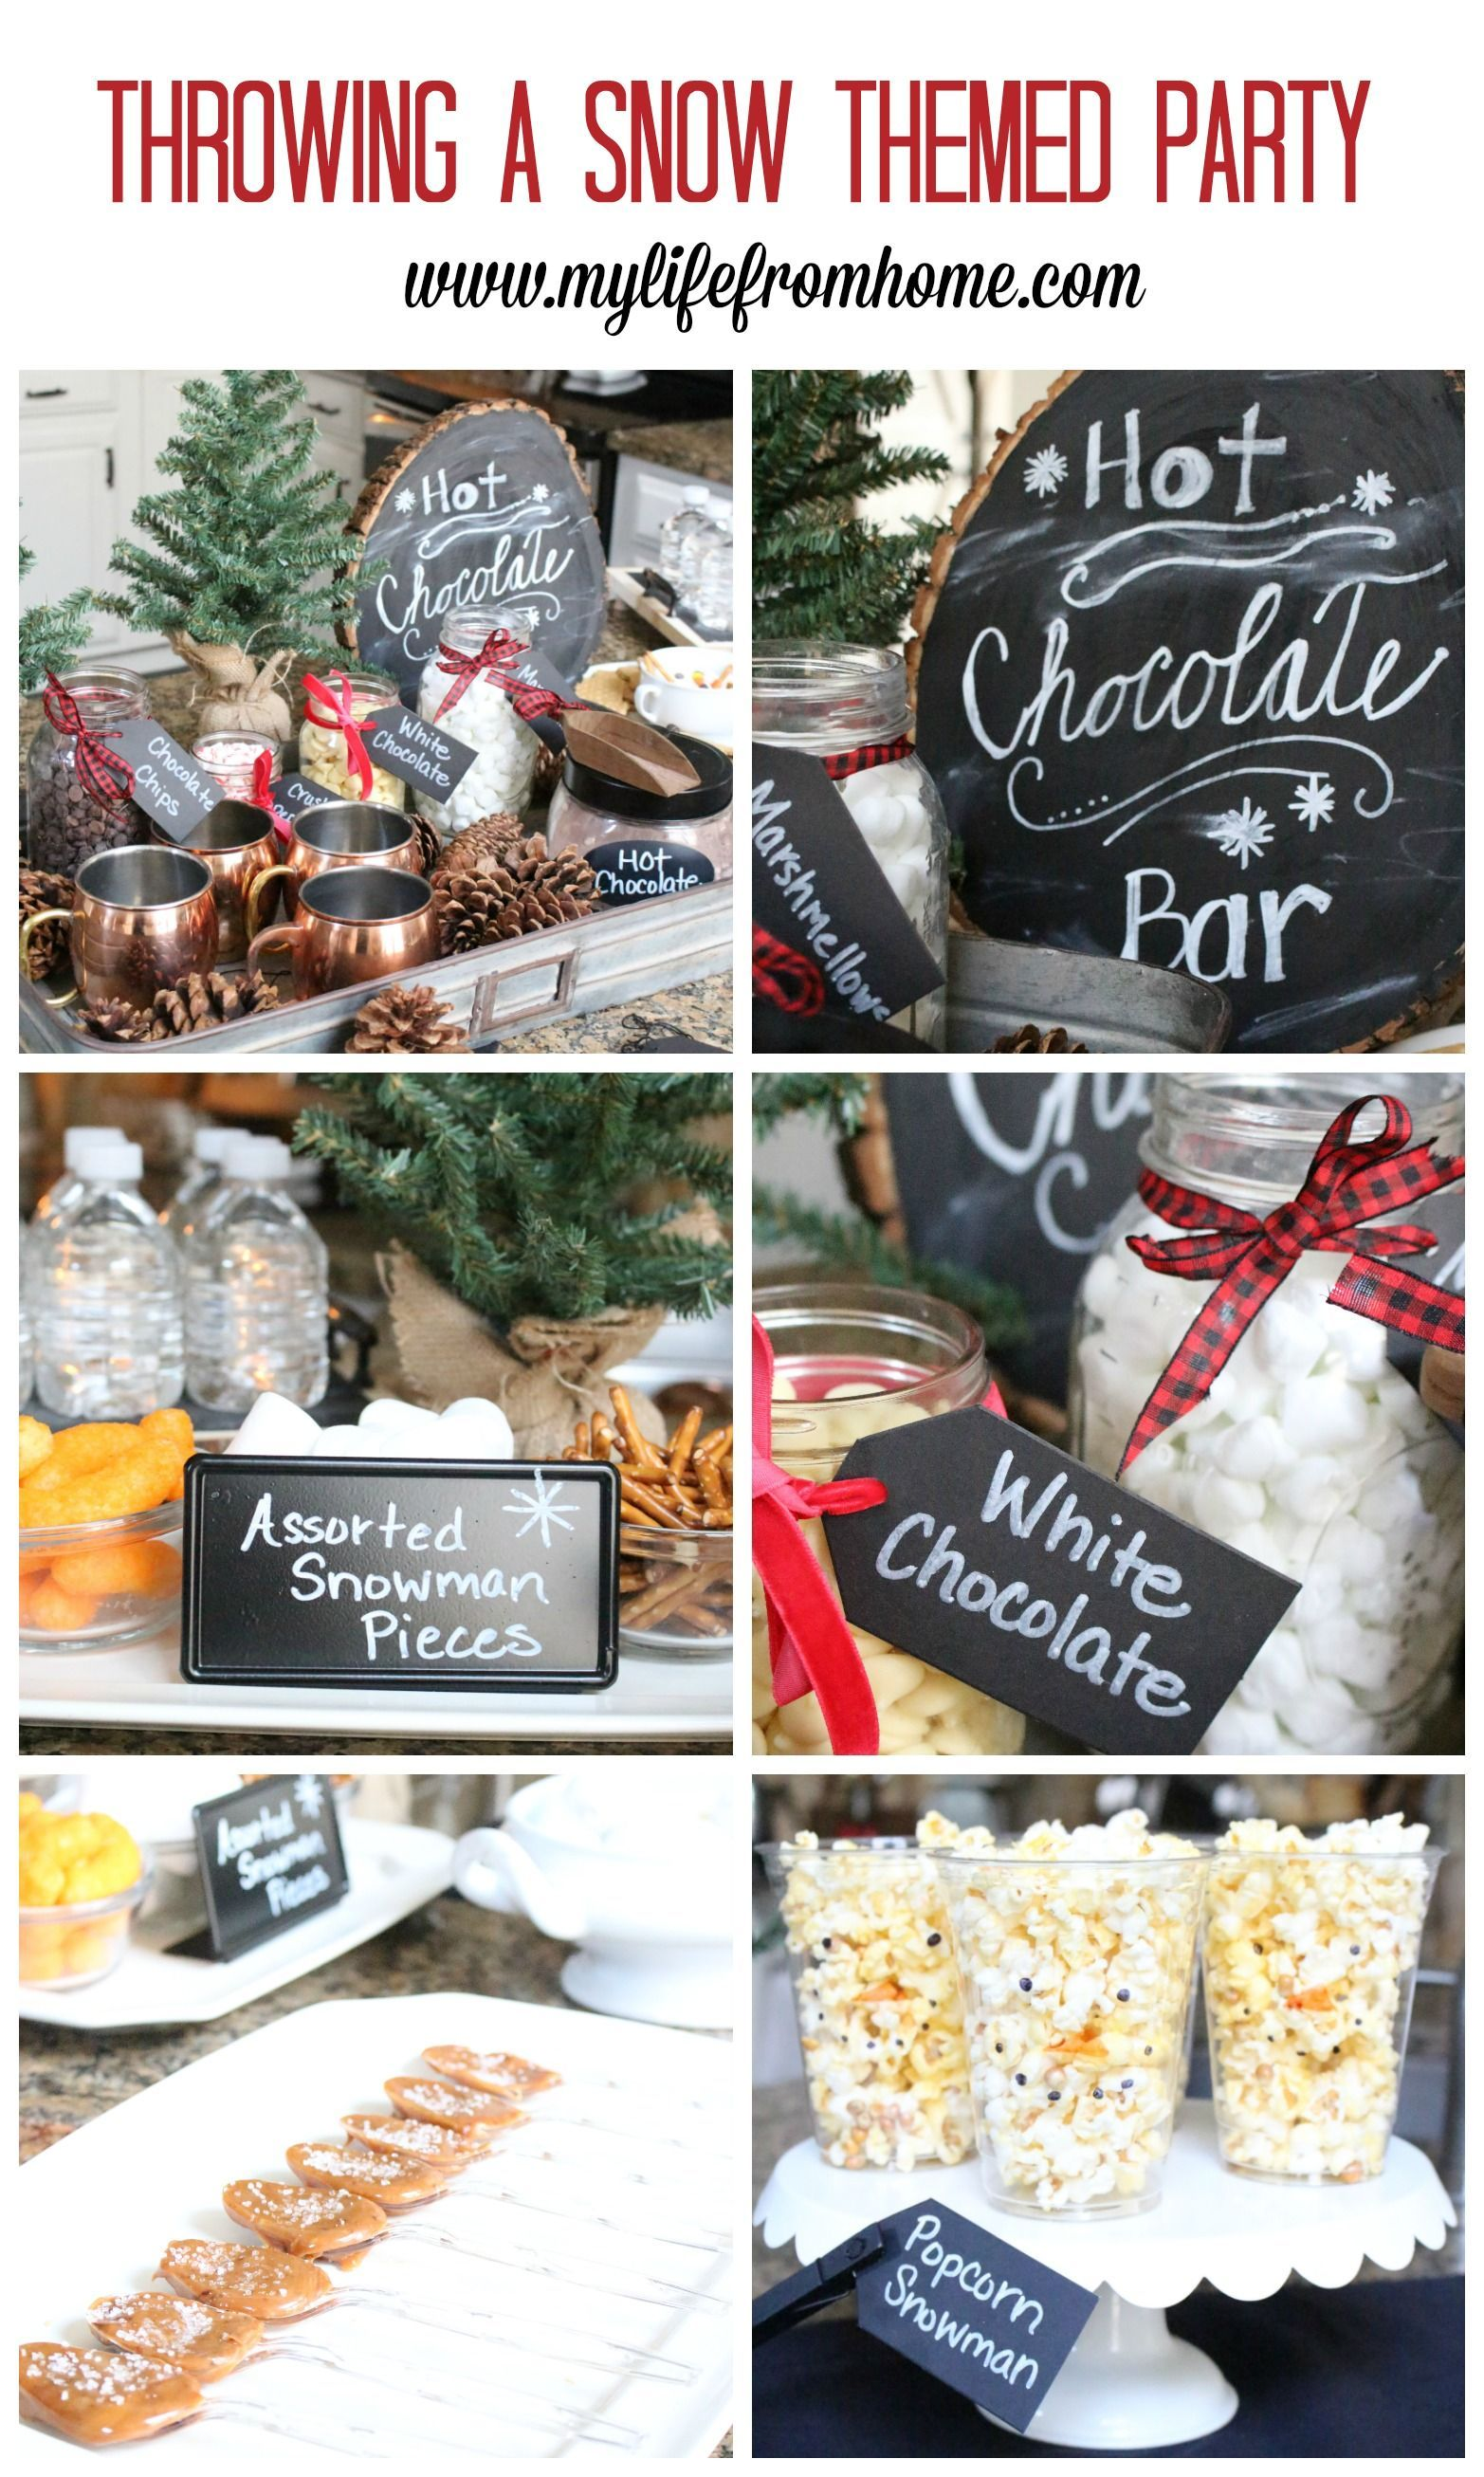 Hot Chocolate Station for a Snow Themed Party | White Cottage Home & Living -  Throwing a snow themed party- winter party ideas- hot chocolate station- hot chocolate bar- party i - #Chocolate #Cottage #Home #Hot #Living #Party #Snow #Station #Themed #White #Winterpartytheme